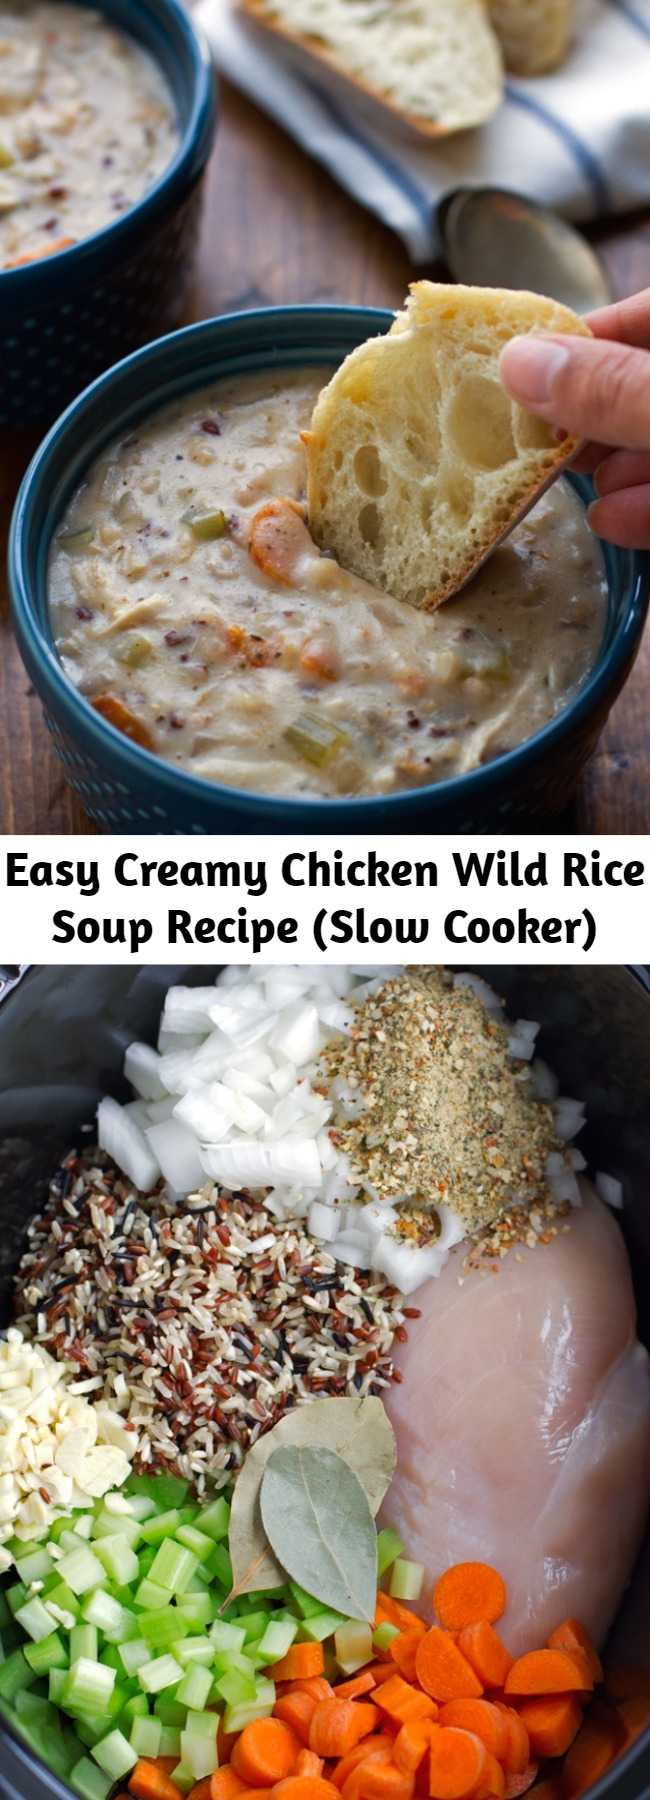 Easy Creamy Chicken Wild Rice Soup Recipe (Slow Cooker) - A warm and cozy chicken wild rice soup made right in the slow cooker. This soup is loaded with carrots, celery, boneless chicken and of course, wild rice! It's the perfect slow cooker meal for a chilly winter night! The best part is, you've probably got most of these ingredients at home already!